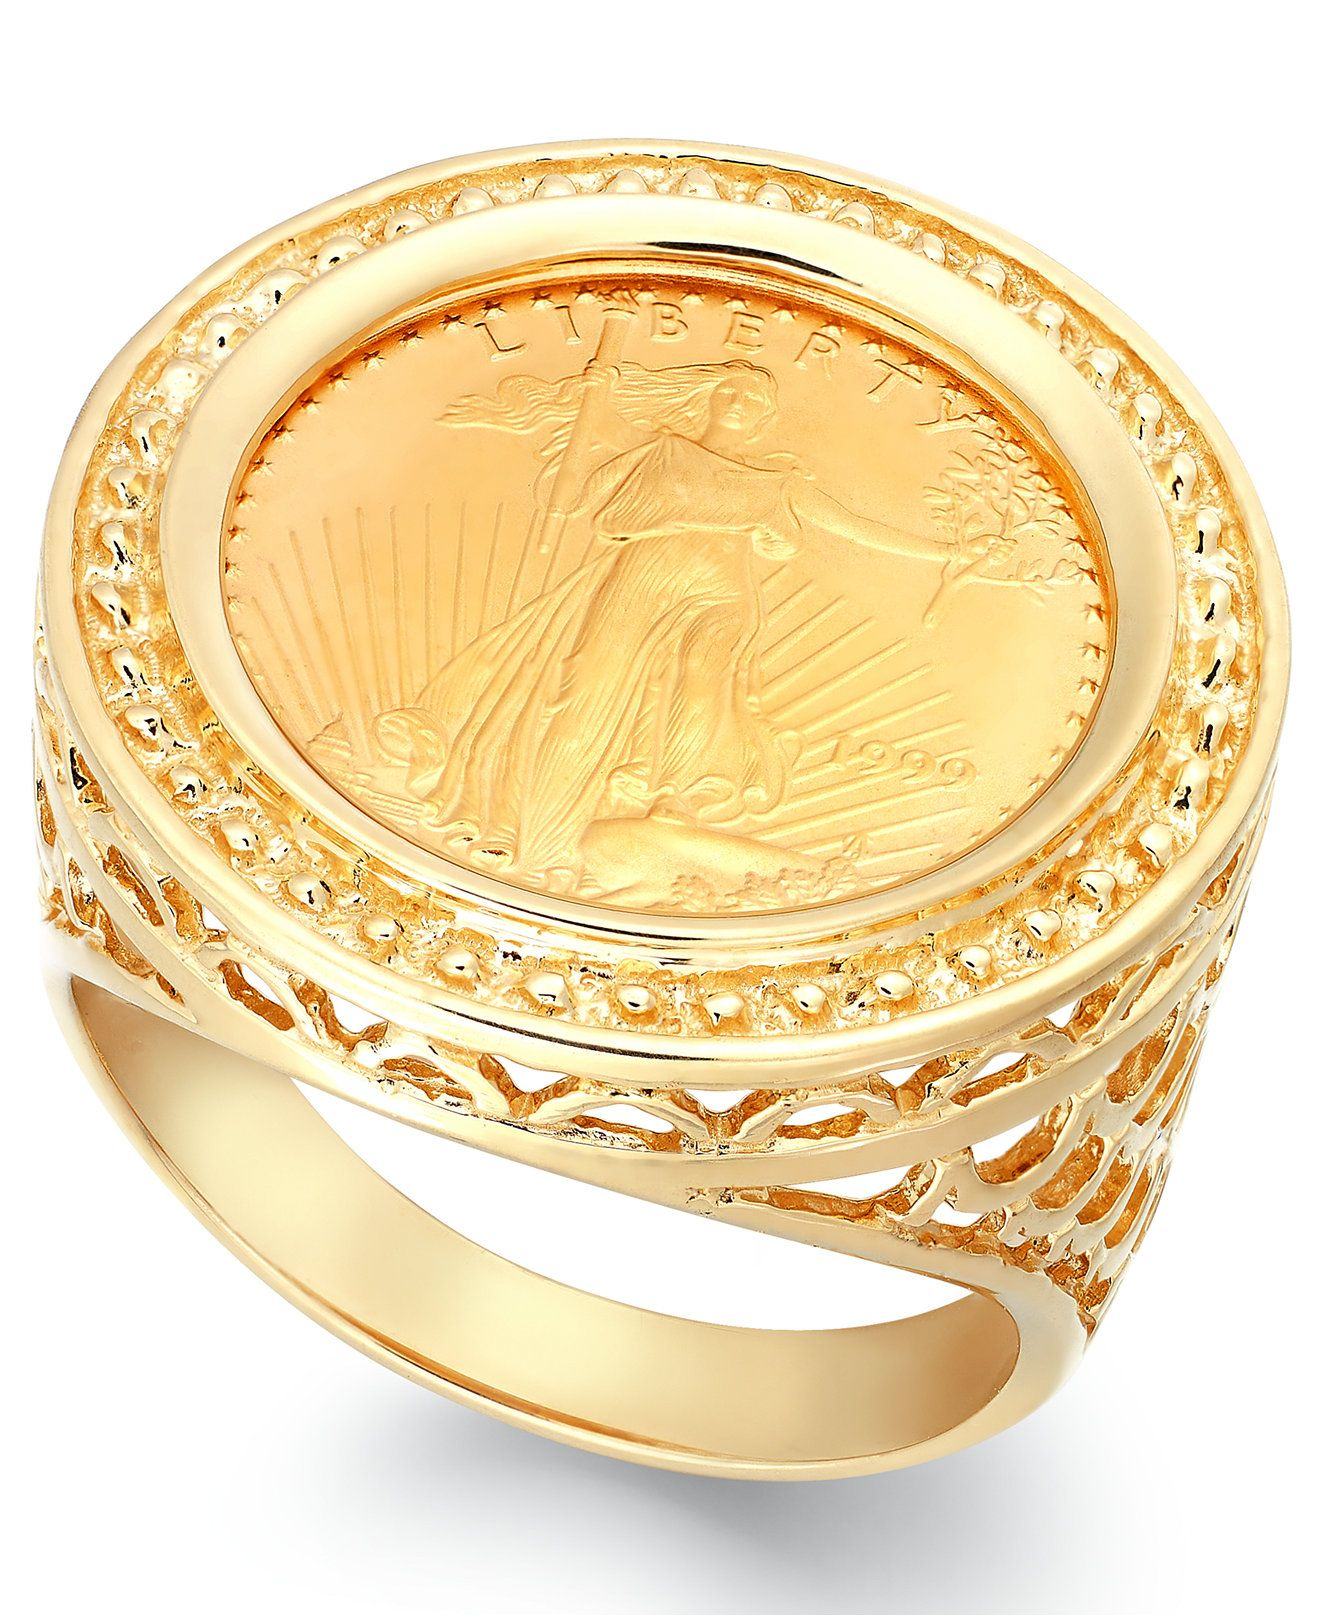 Genuine Us Eagle Coin Ring In 22k And 14k Gold Rings Jewelry Watches Macy S Gold Coin Ring Coin Jewelry Coin Ring